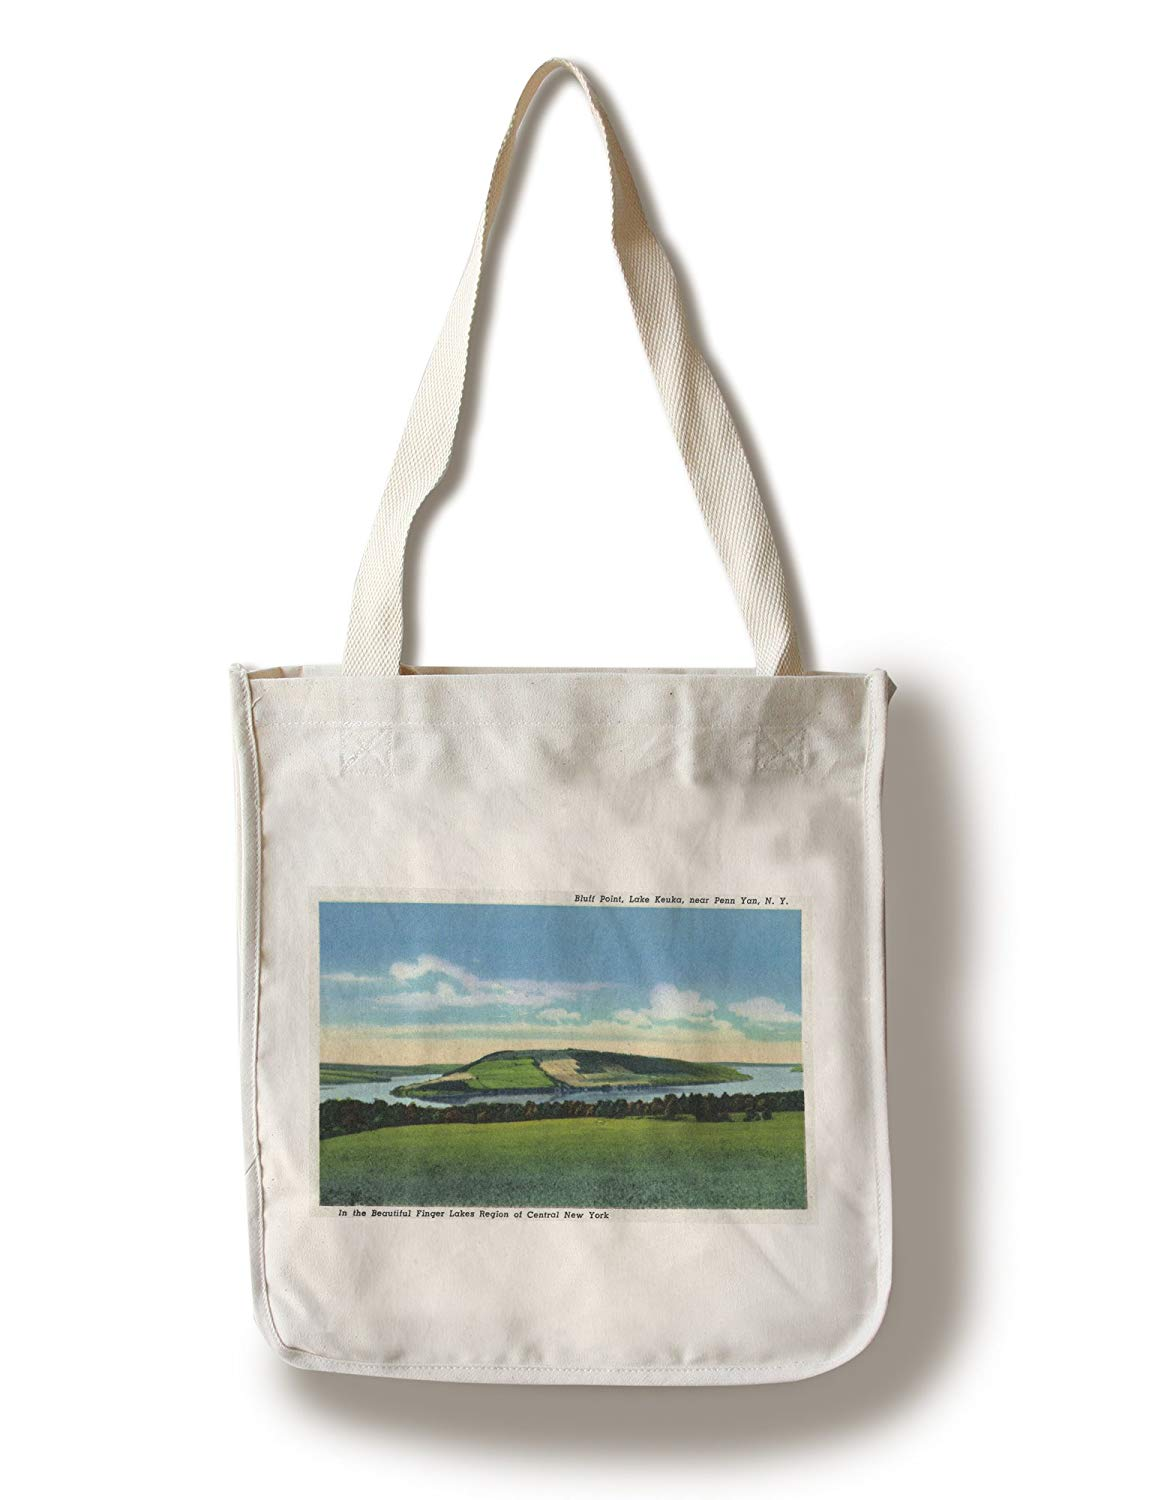 Lake Keuka, New York - View of Bluff Point near Penn Yan (100% Cotton Tote Bag - Reusable, Gussets, Made in America)